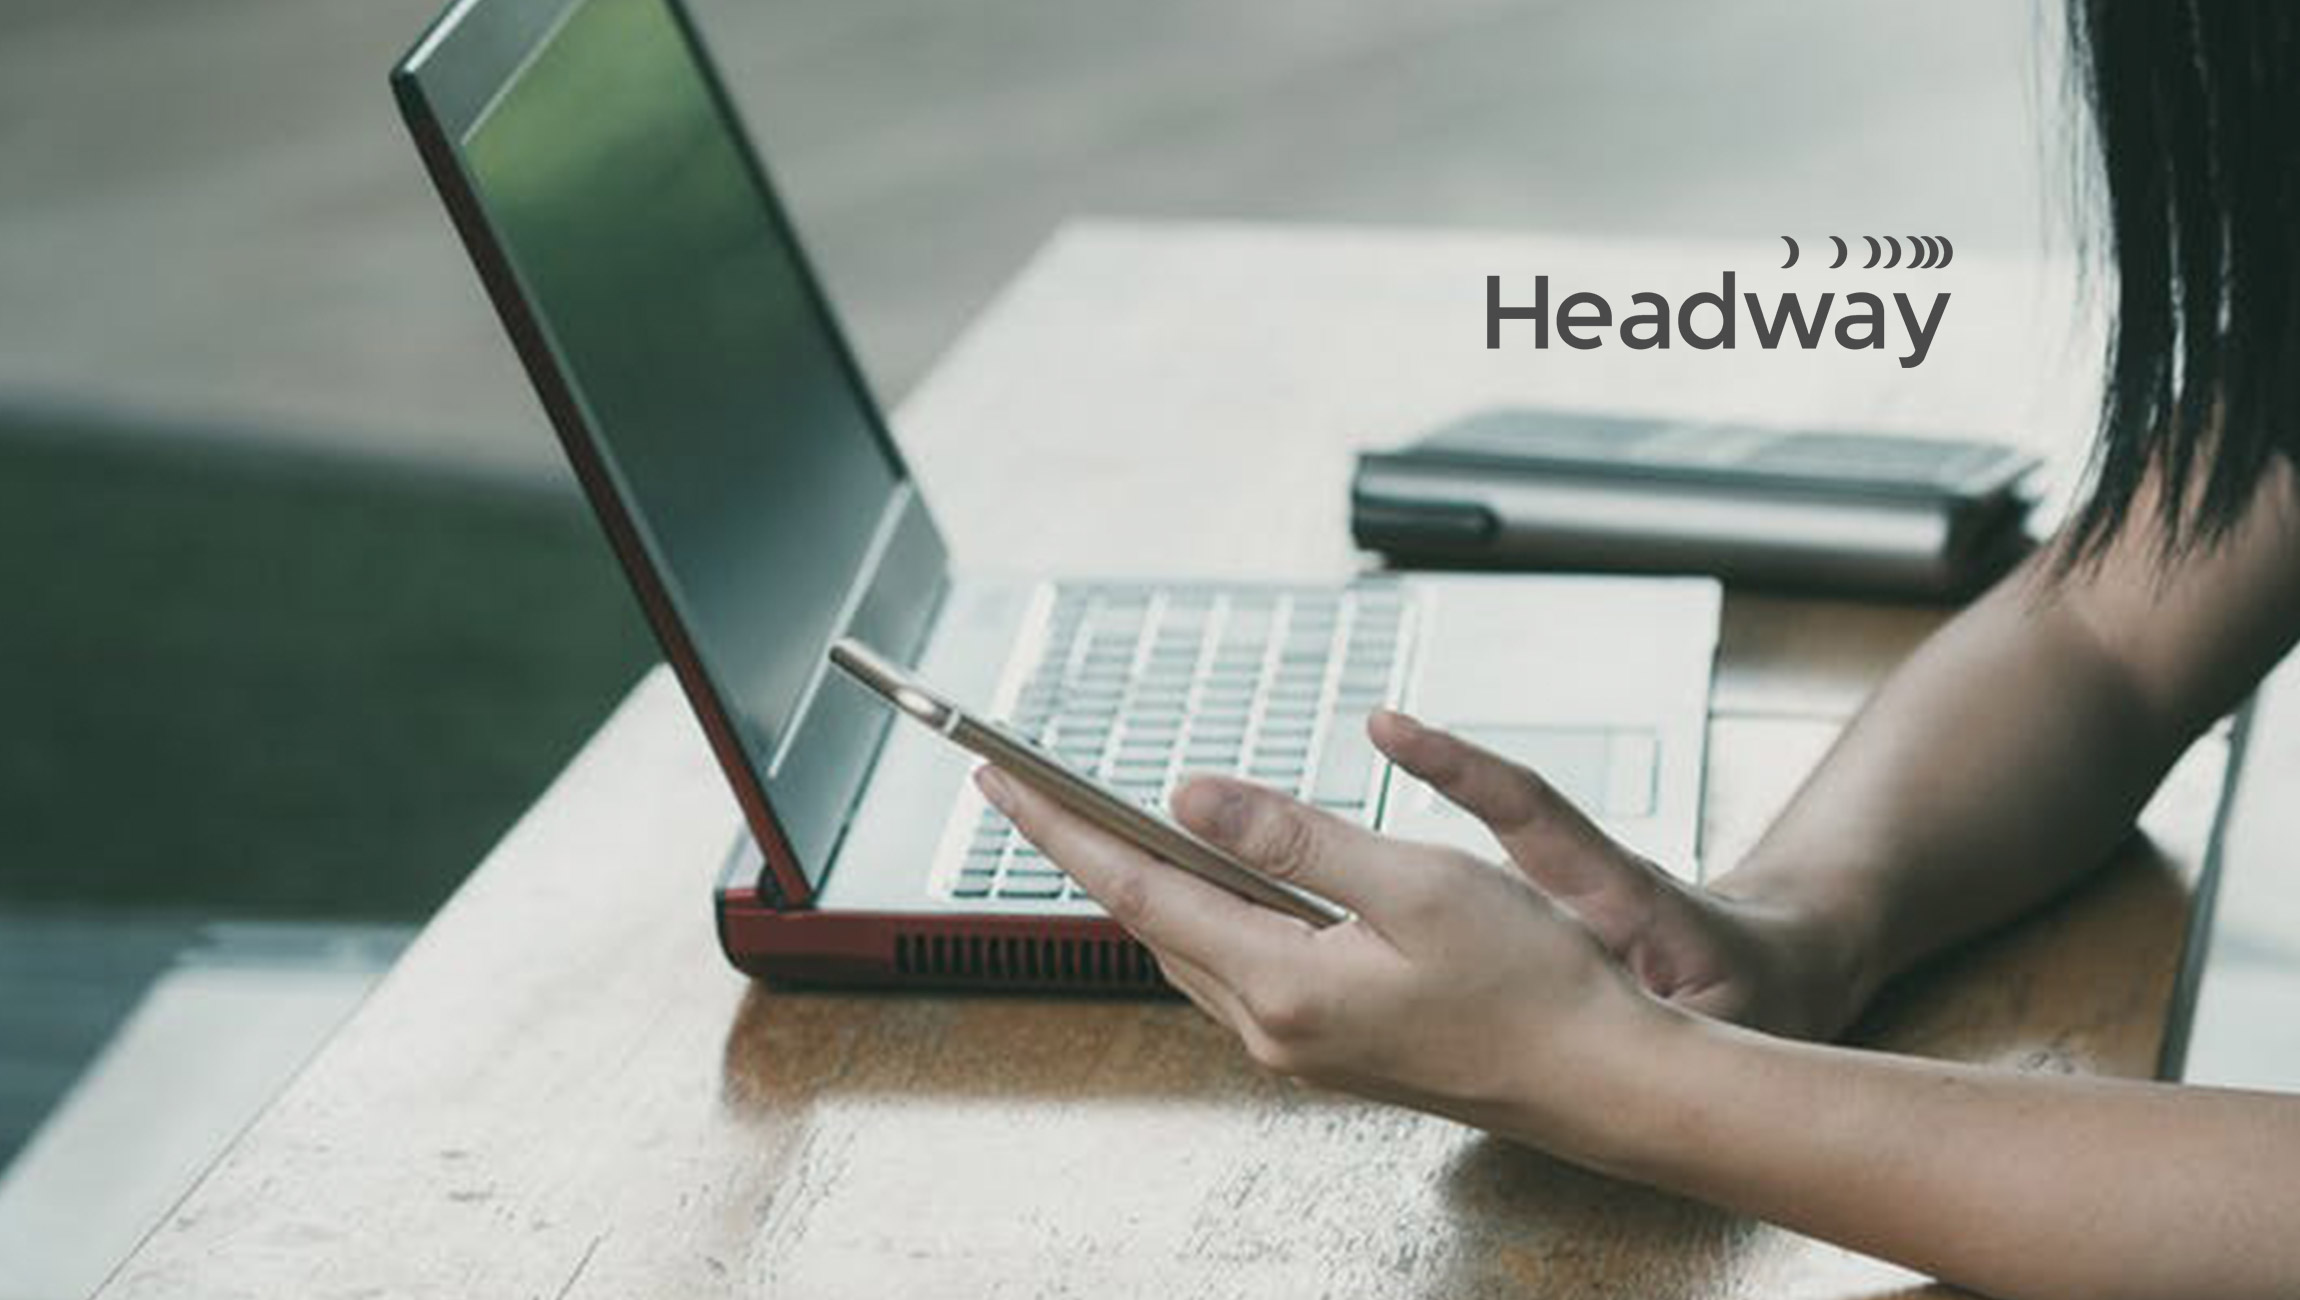 Headway Reinforces Its Mobile Marketing Capabilities with Acquisition of Mobile-First Programmatic Platform Smadex